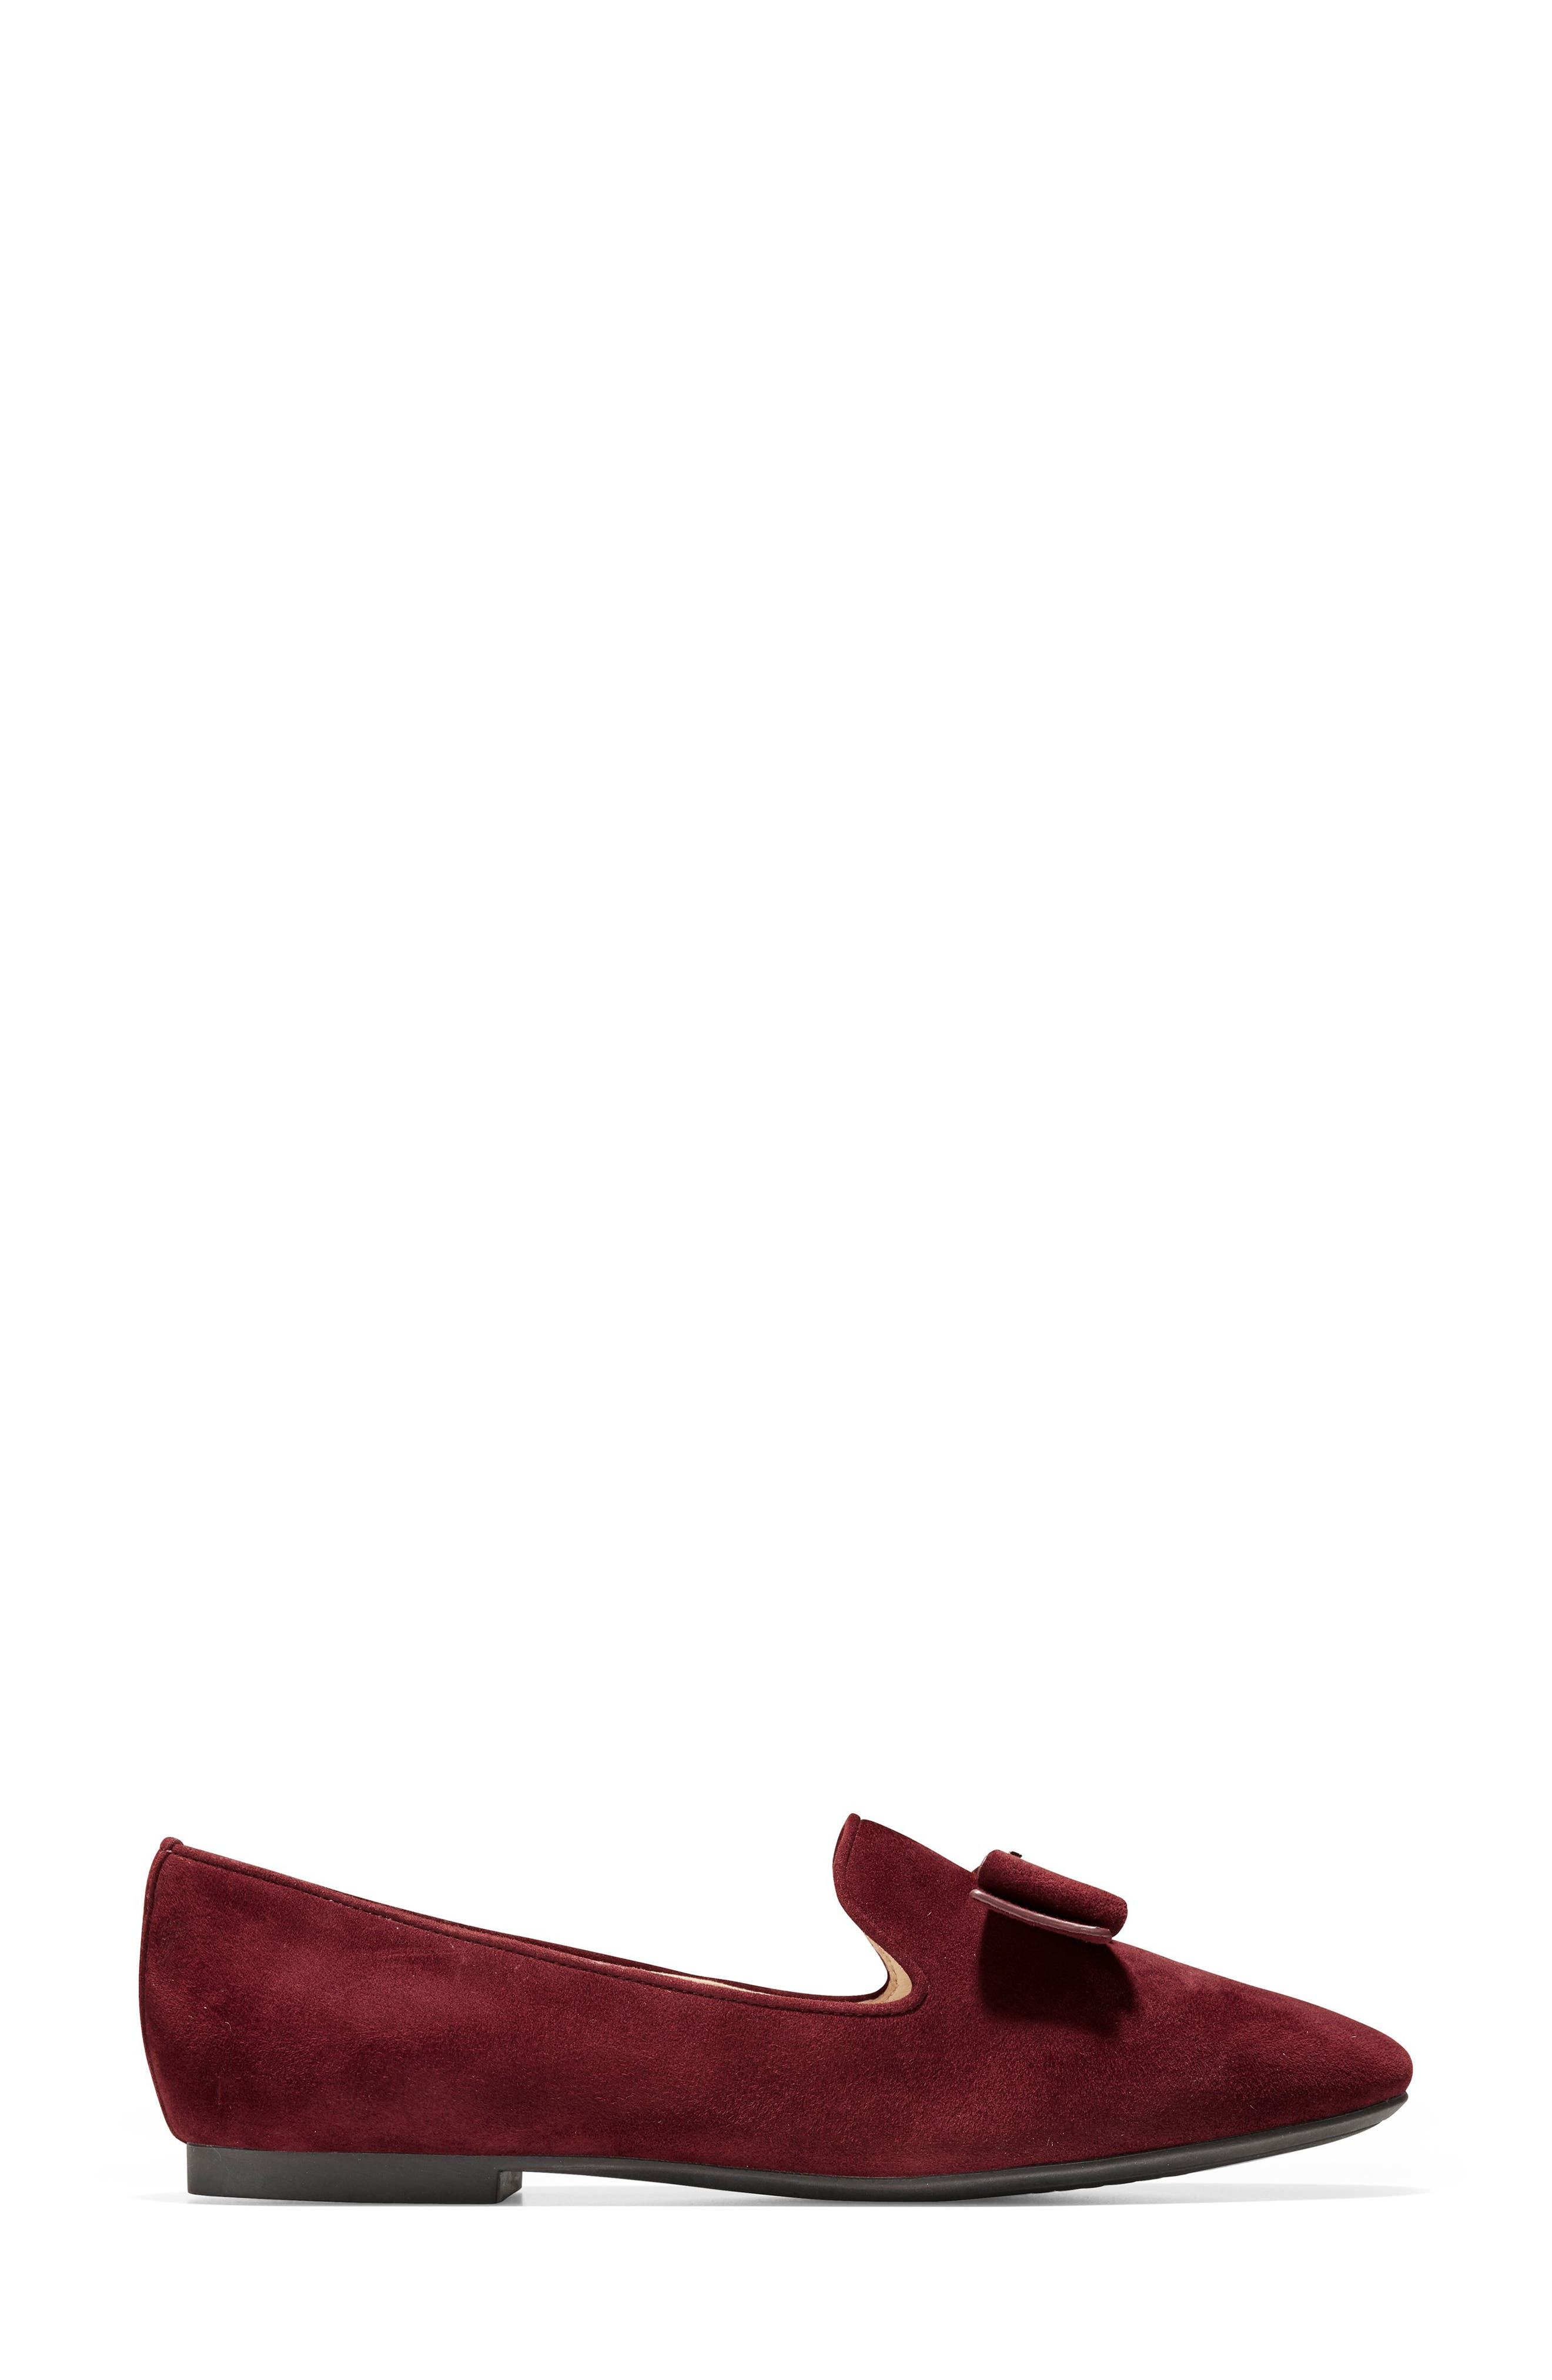 Tali Bow Loafer,                             Alternate thumbnail 3, color,                             605